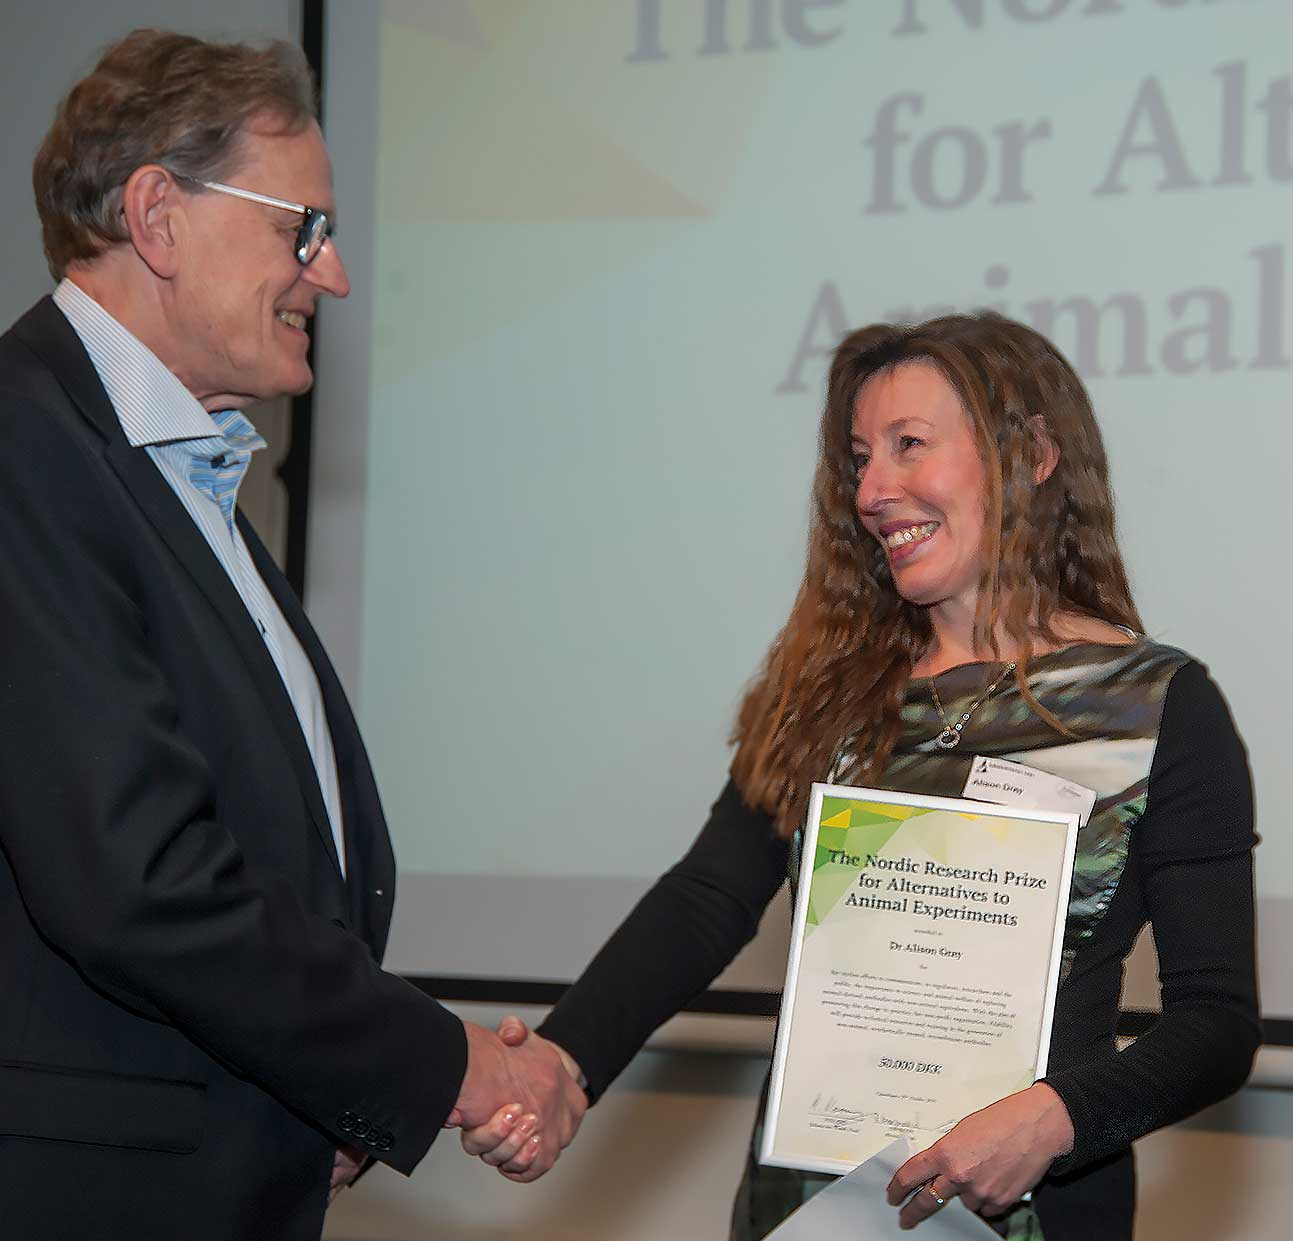 Alison-Gray-Afability-Nordic-Prize-for-Alternatives-to-Animal-Experiments